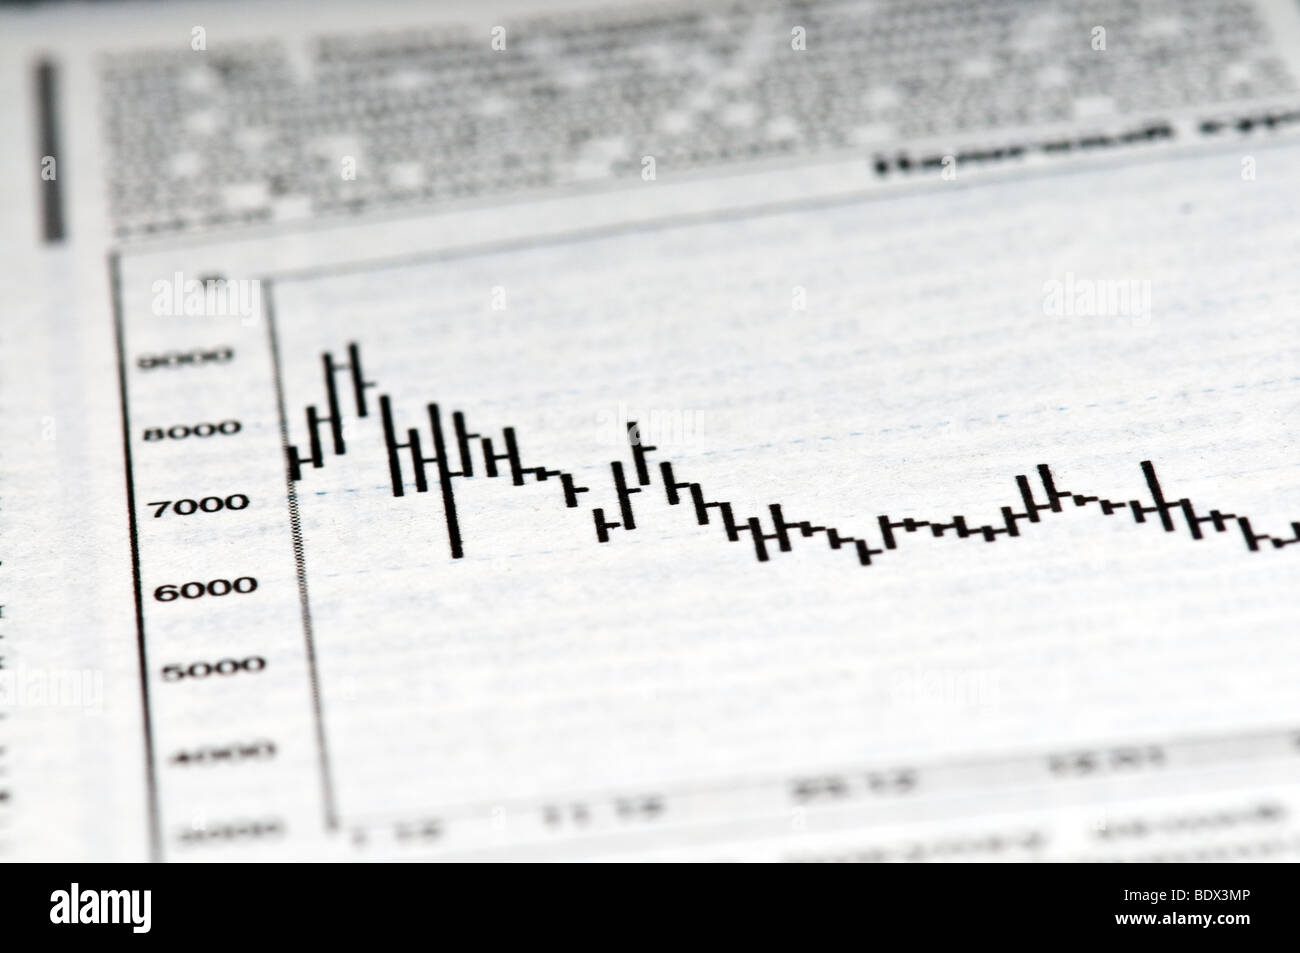 Analysis of a stock chart printed in a financial newspaper - Stock Image